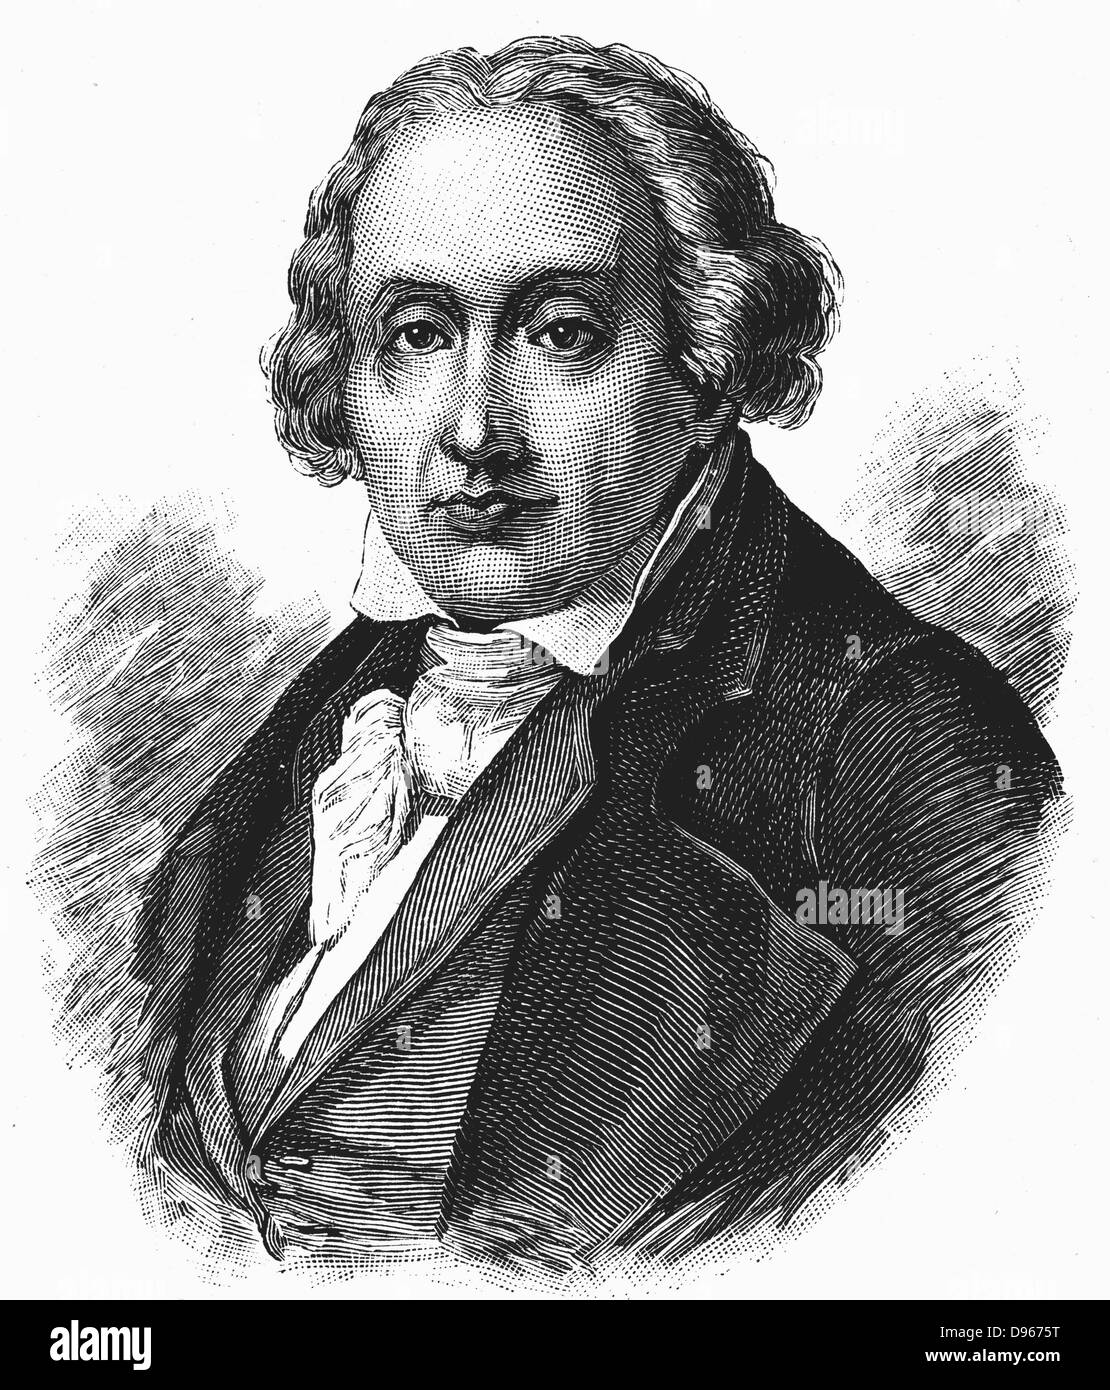 Joseph Marie Jacquard  (1752-1834) French silk-weaver and inventor. Engraving - Stock Image